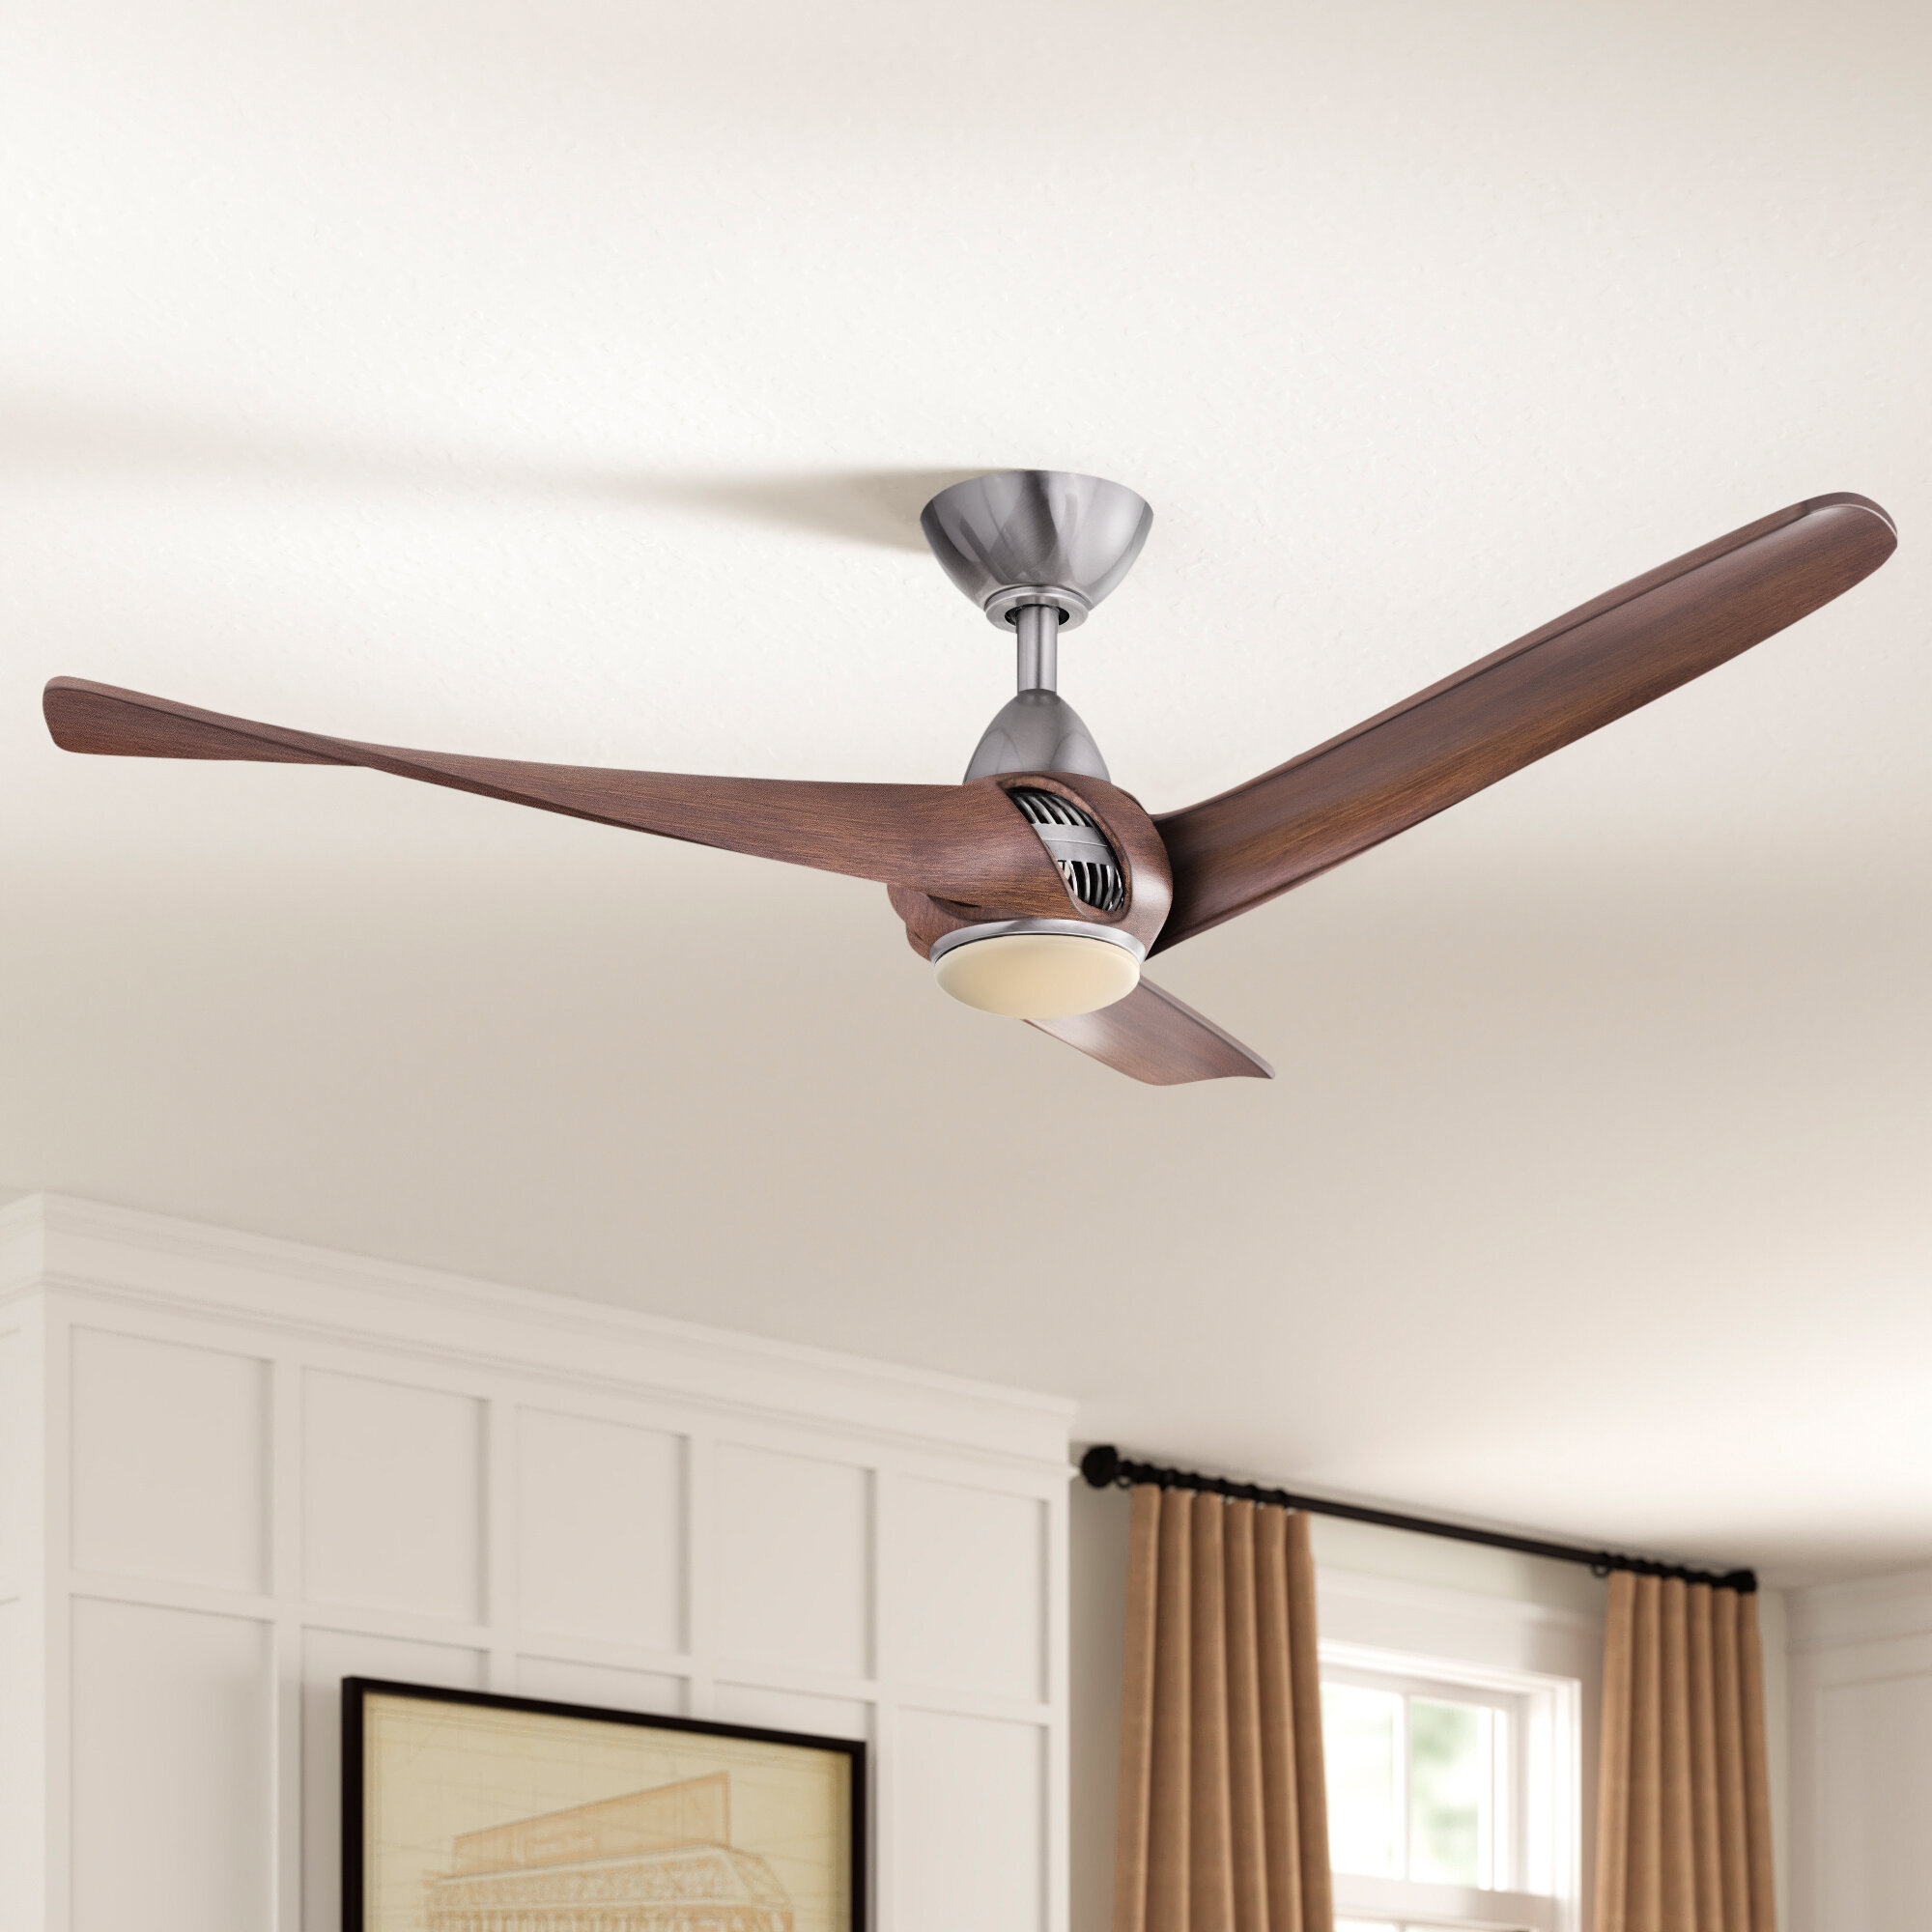 Three Posts 52 Cairo 3 Blade Led Ceiling Fan With Remote Control And Light Kit Included Reviews Wayfair